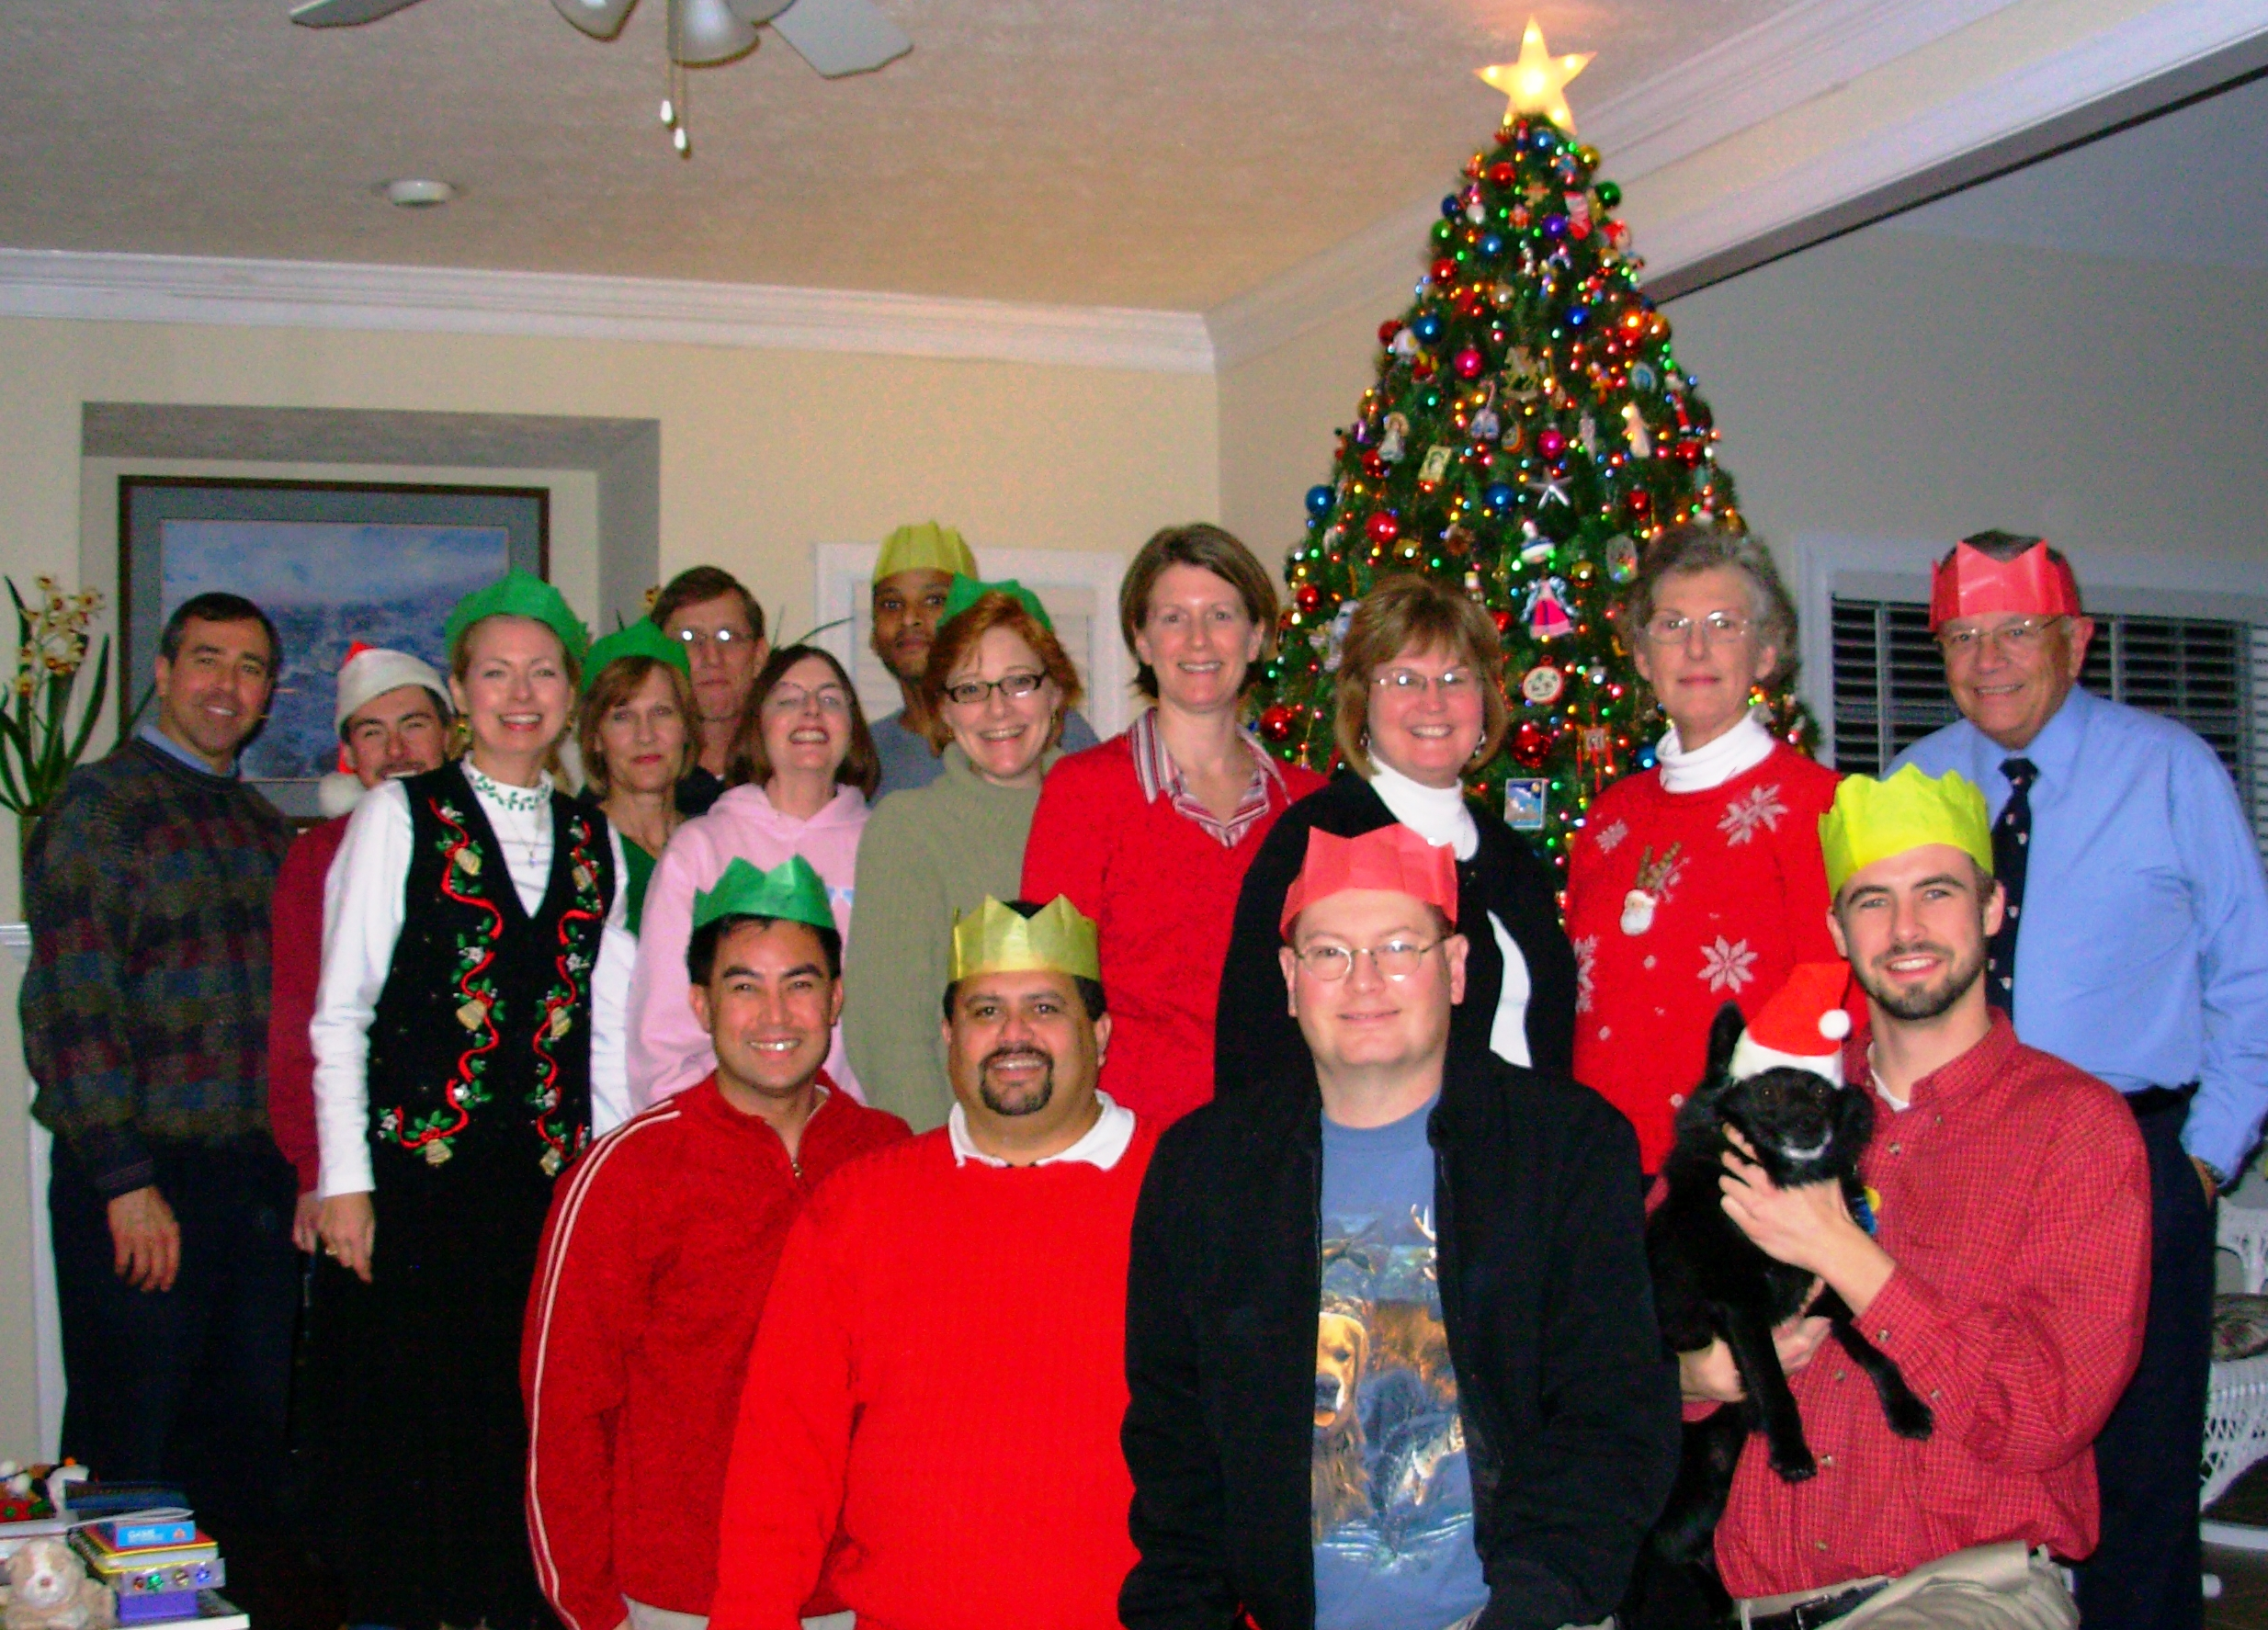 Five years ago today, our traditional Christmas dinner party with friends. We did not know it was the last time we would all be together at Christmas.  December 21, 2008